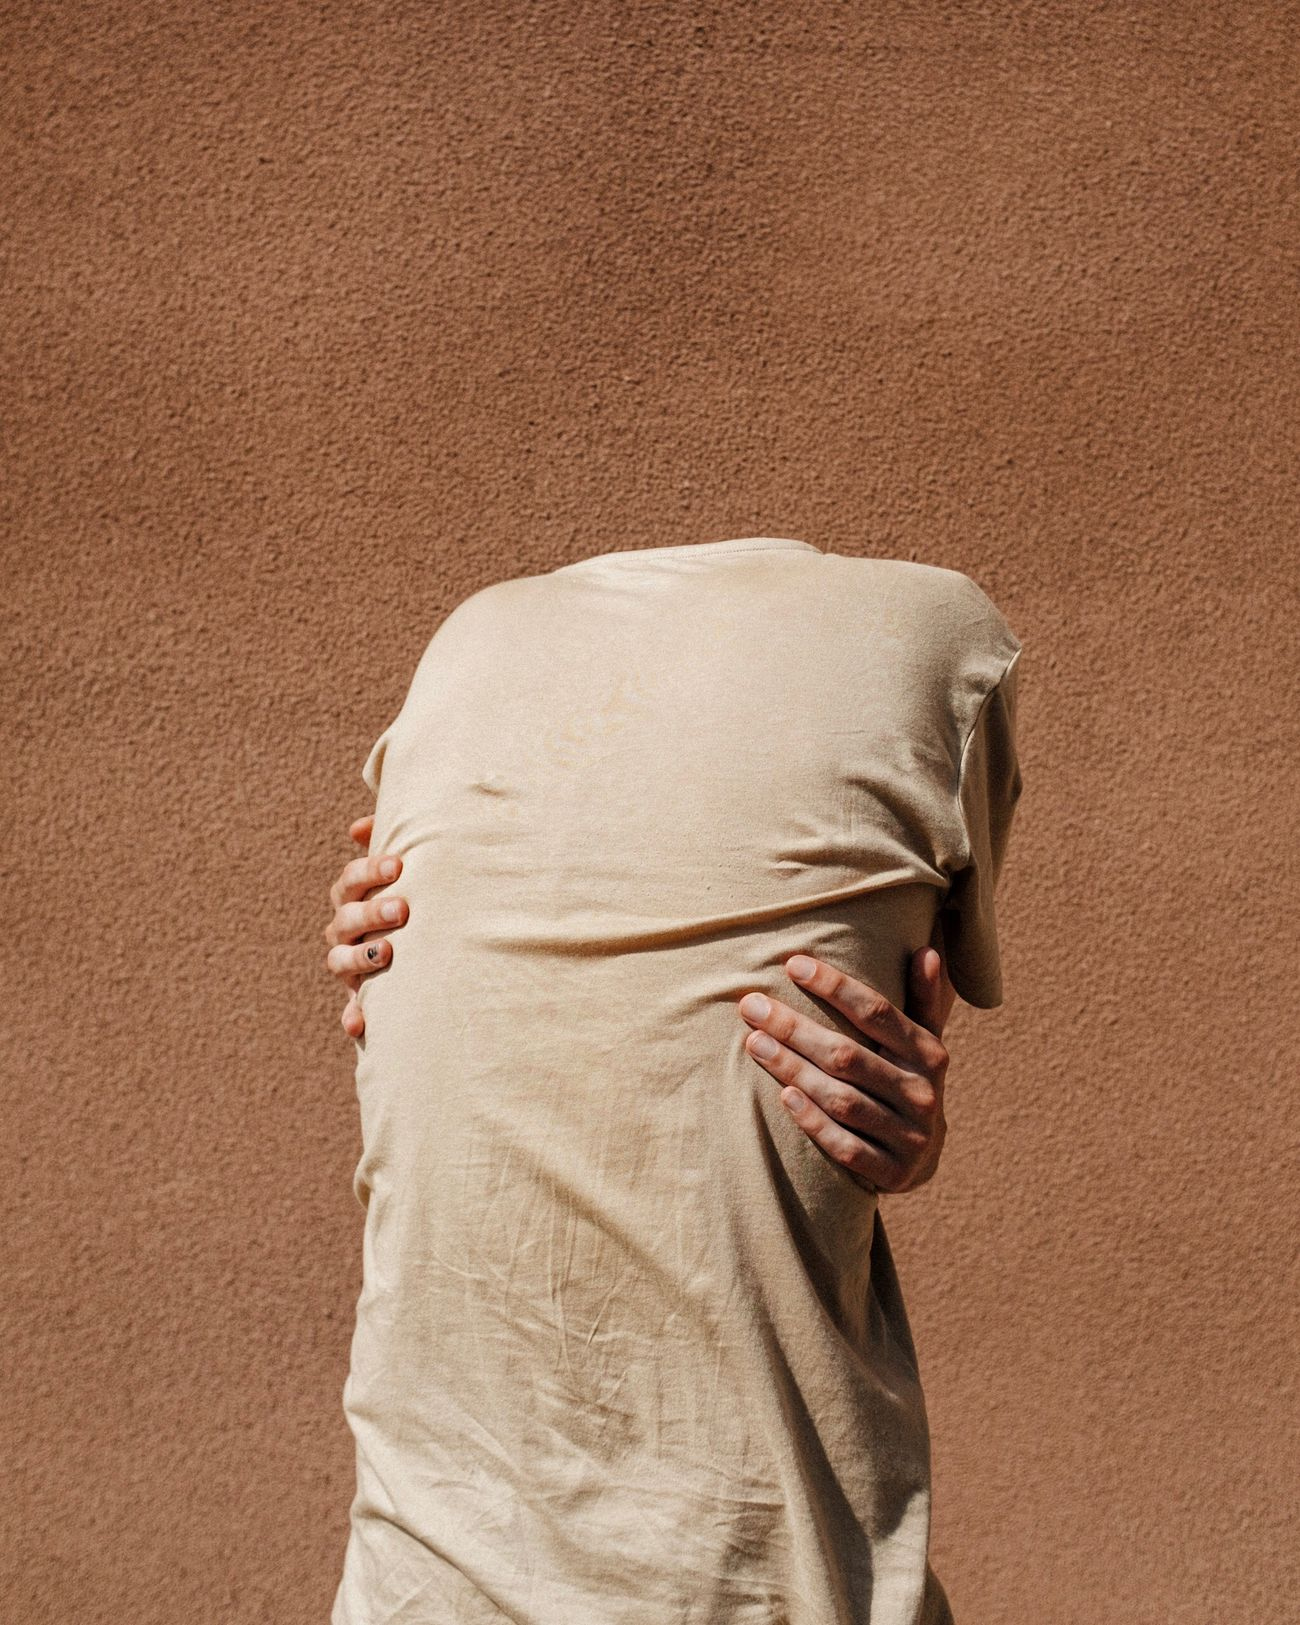 one person, obscured face, standing, adult, human body part